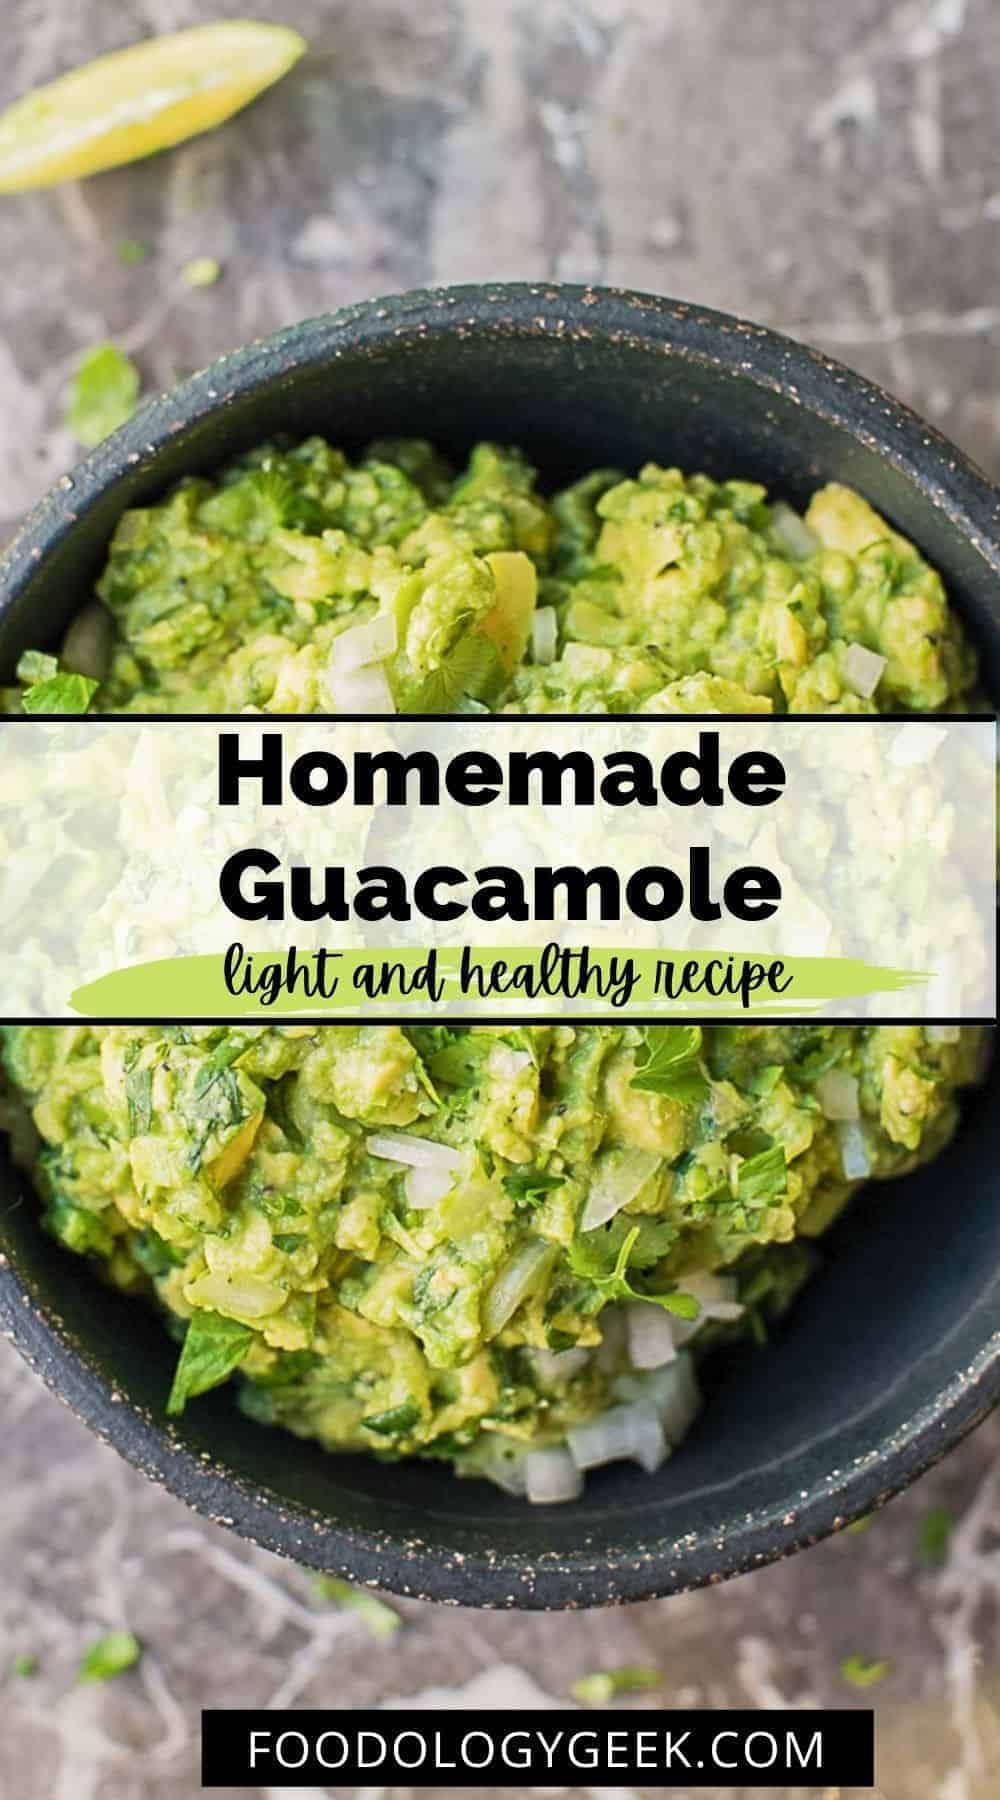 This the BEST guacamole recipe! It's honestly everything guacamole should be. It's creamy and chunky and has a ton of flavor.